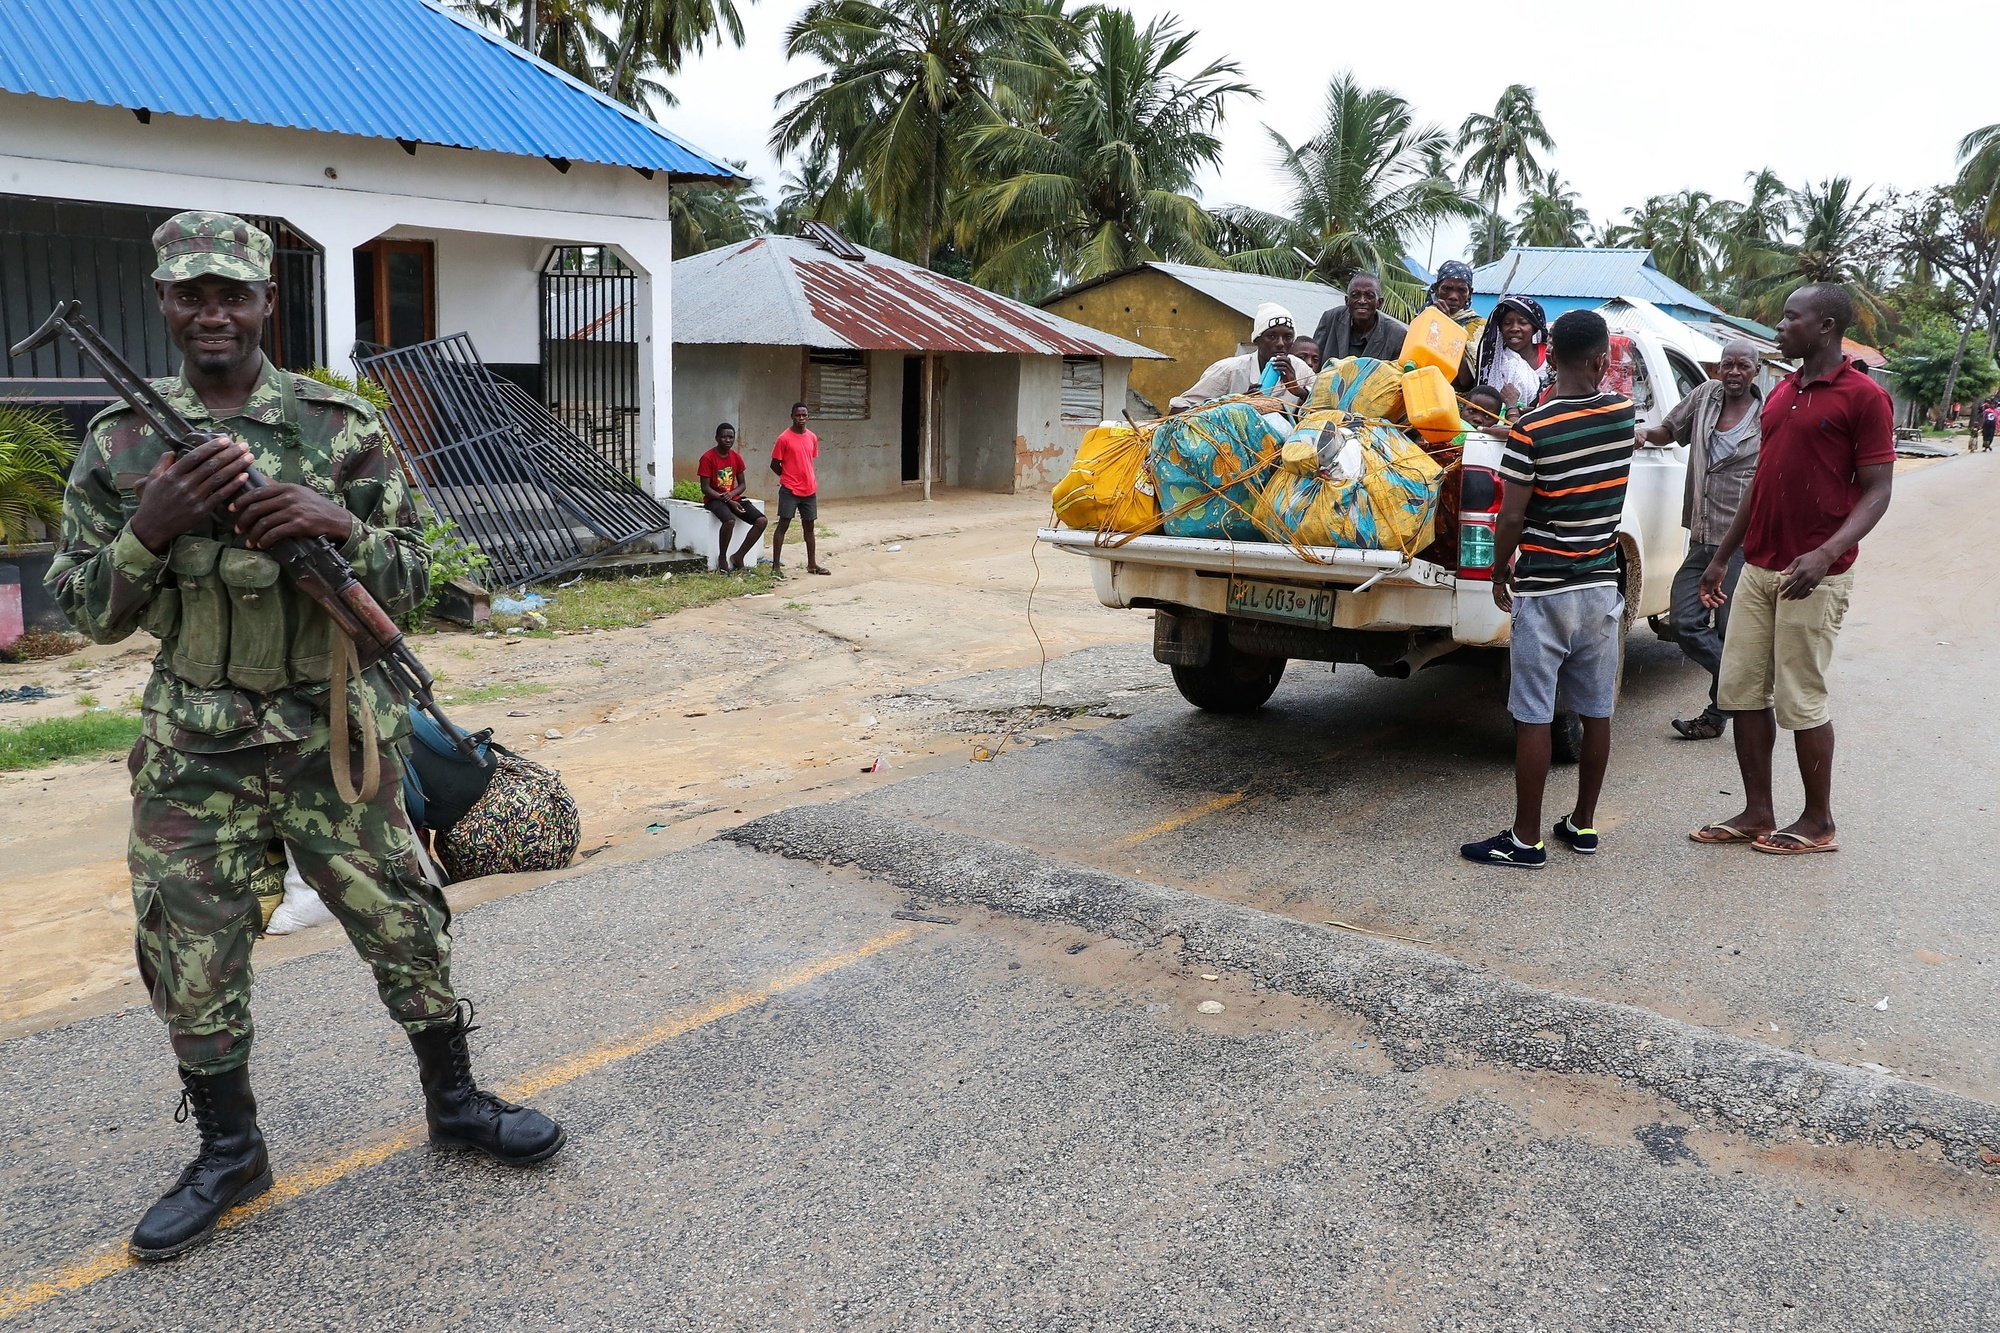 epa09131124 Residents try to return to normality in Palma, Cabo Delgado, Mozambique, 12 April 2021. The violence unleashed more than three years ago in Cabo Delgado province escalated again about two weeks ago, when armed groups first attacked the town of Palma.  EPA/JOAO RELVAS